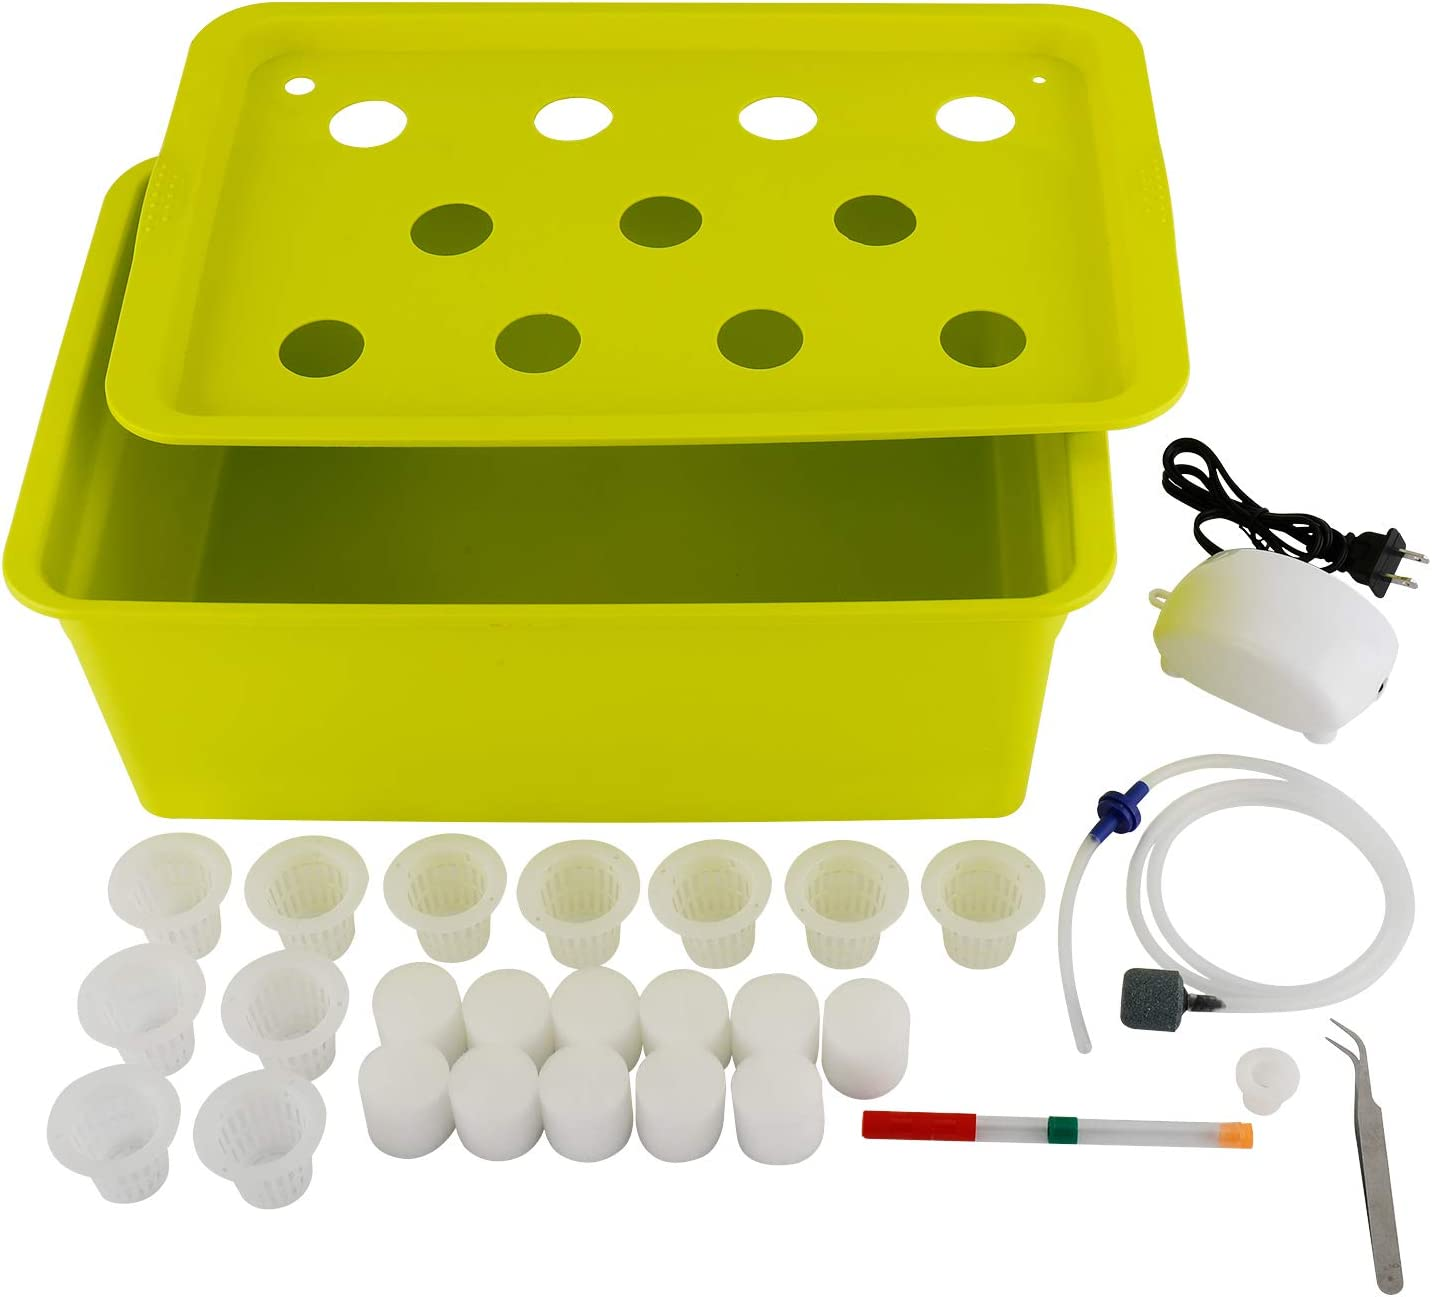 Max 86% OFF YaeMarine We OFFer at cheap prices Hydroponics Grower Kit Hydroponi Indoor Watering Self